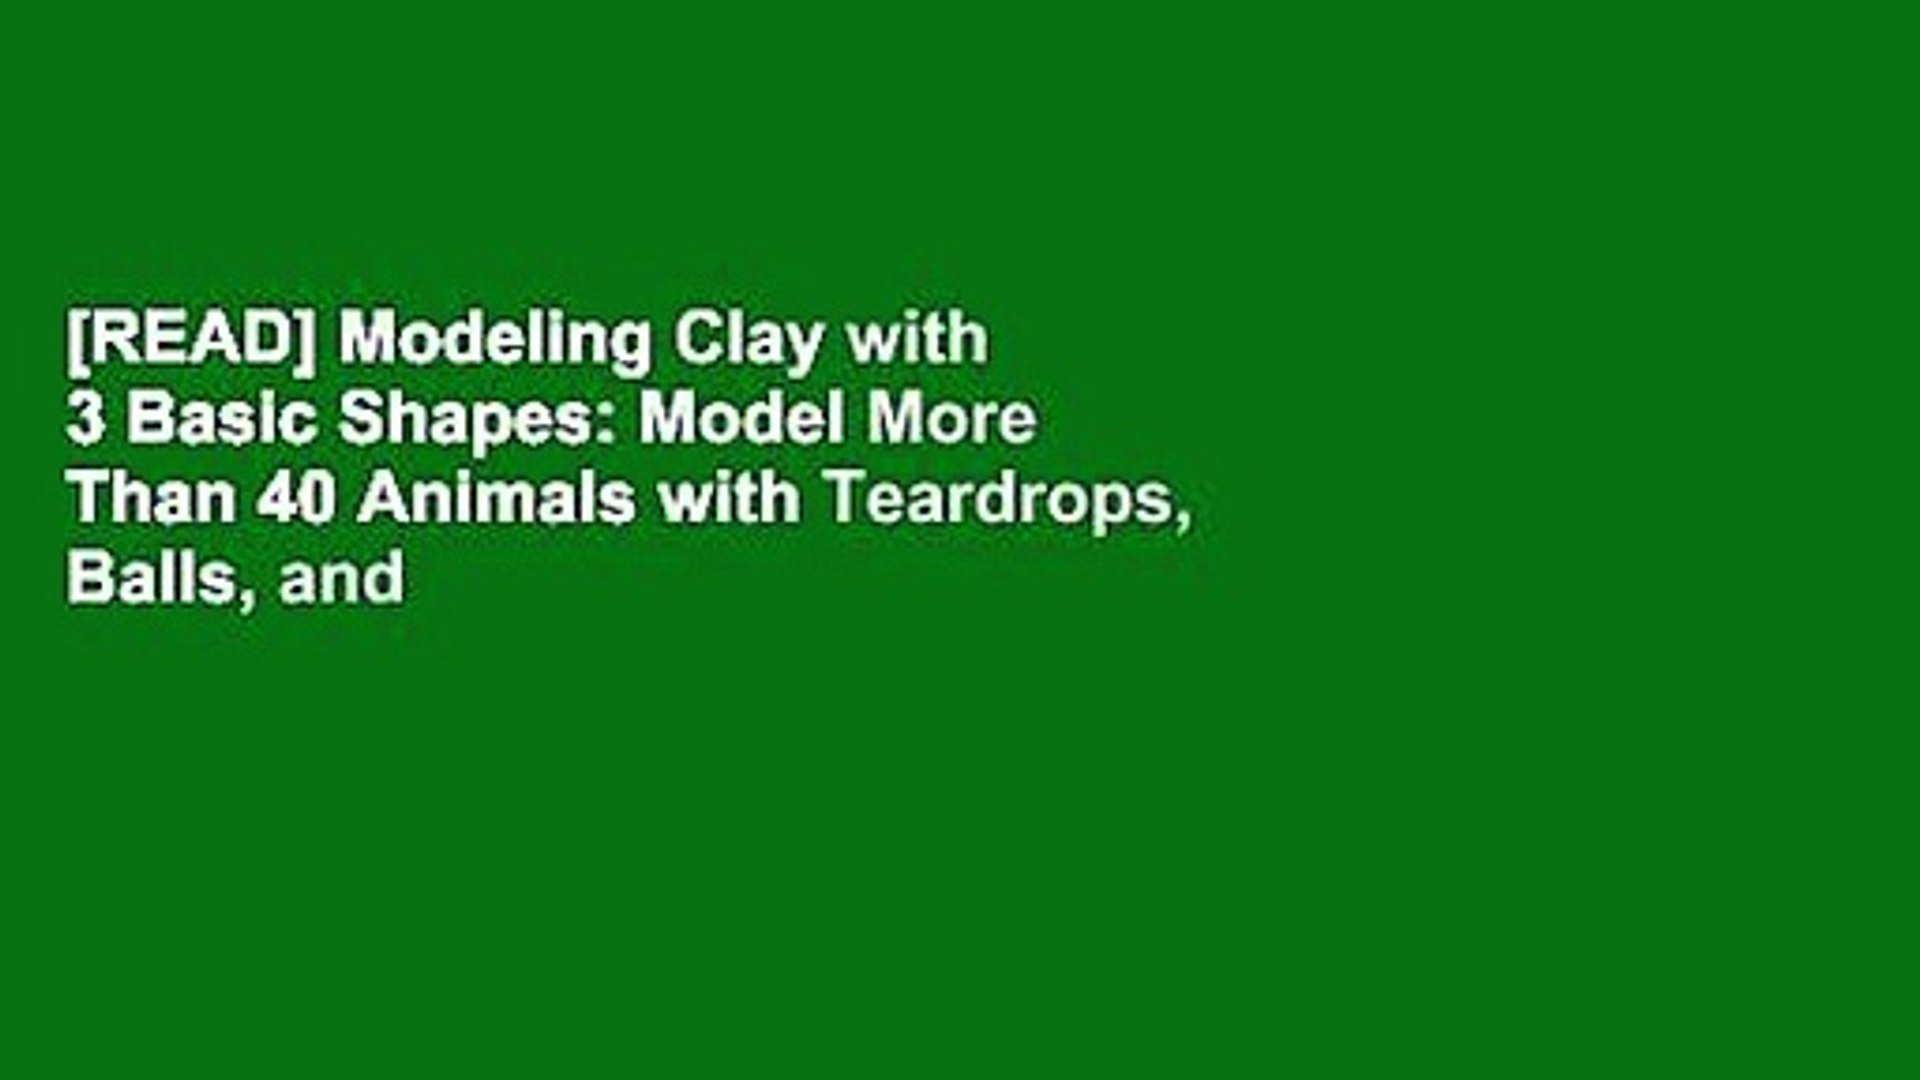 [READ] Modeling Clay with 3 Basic Shapes: Model More Than 40 Animals with Teardrops, Balls, and